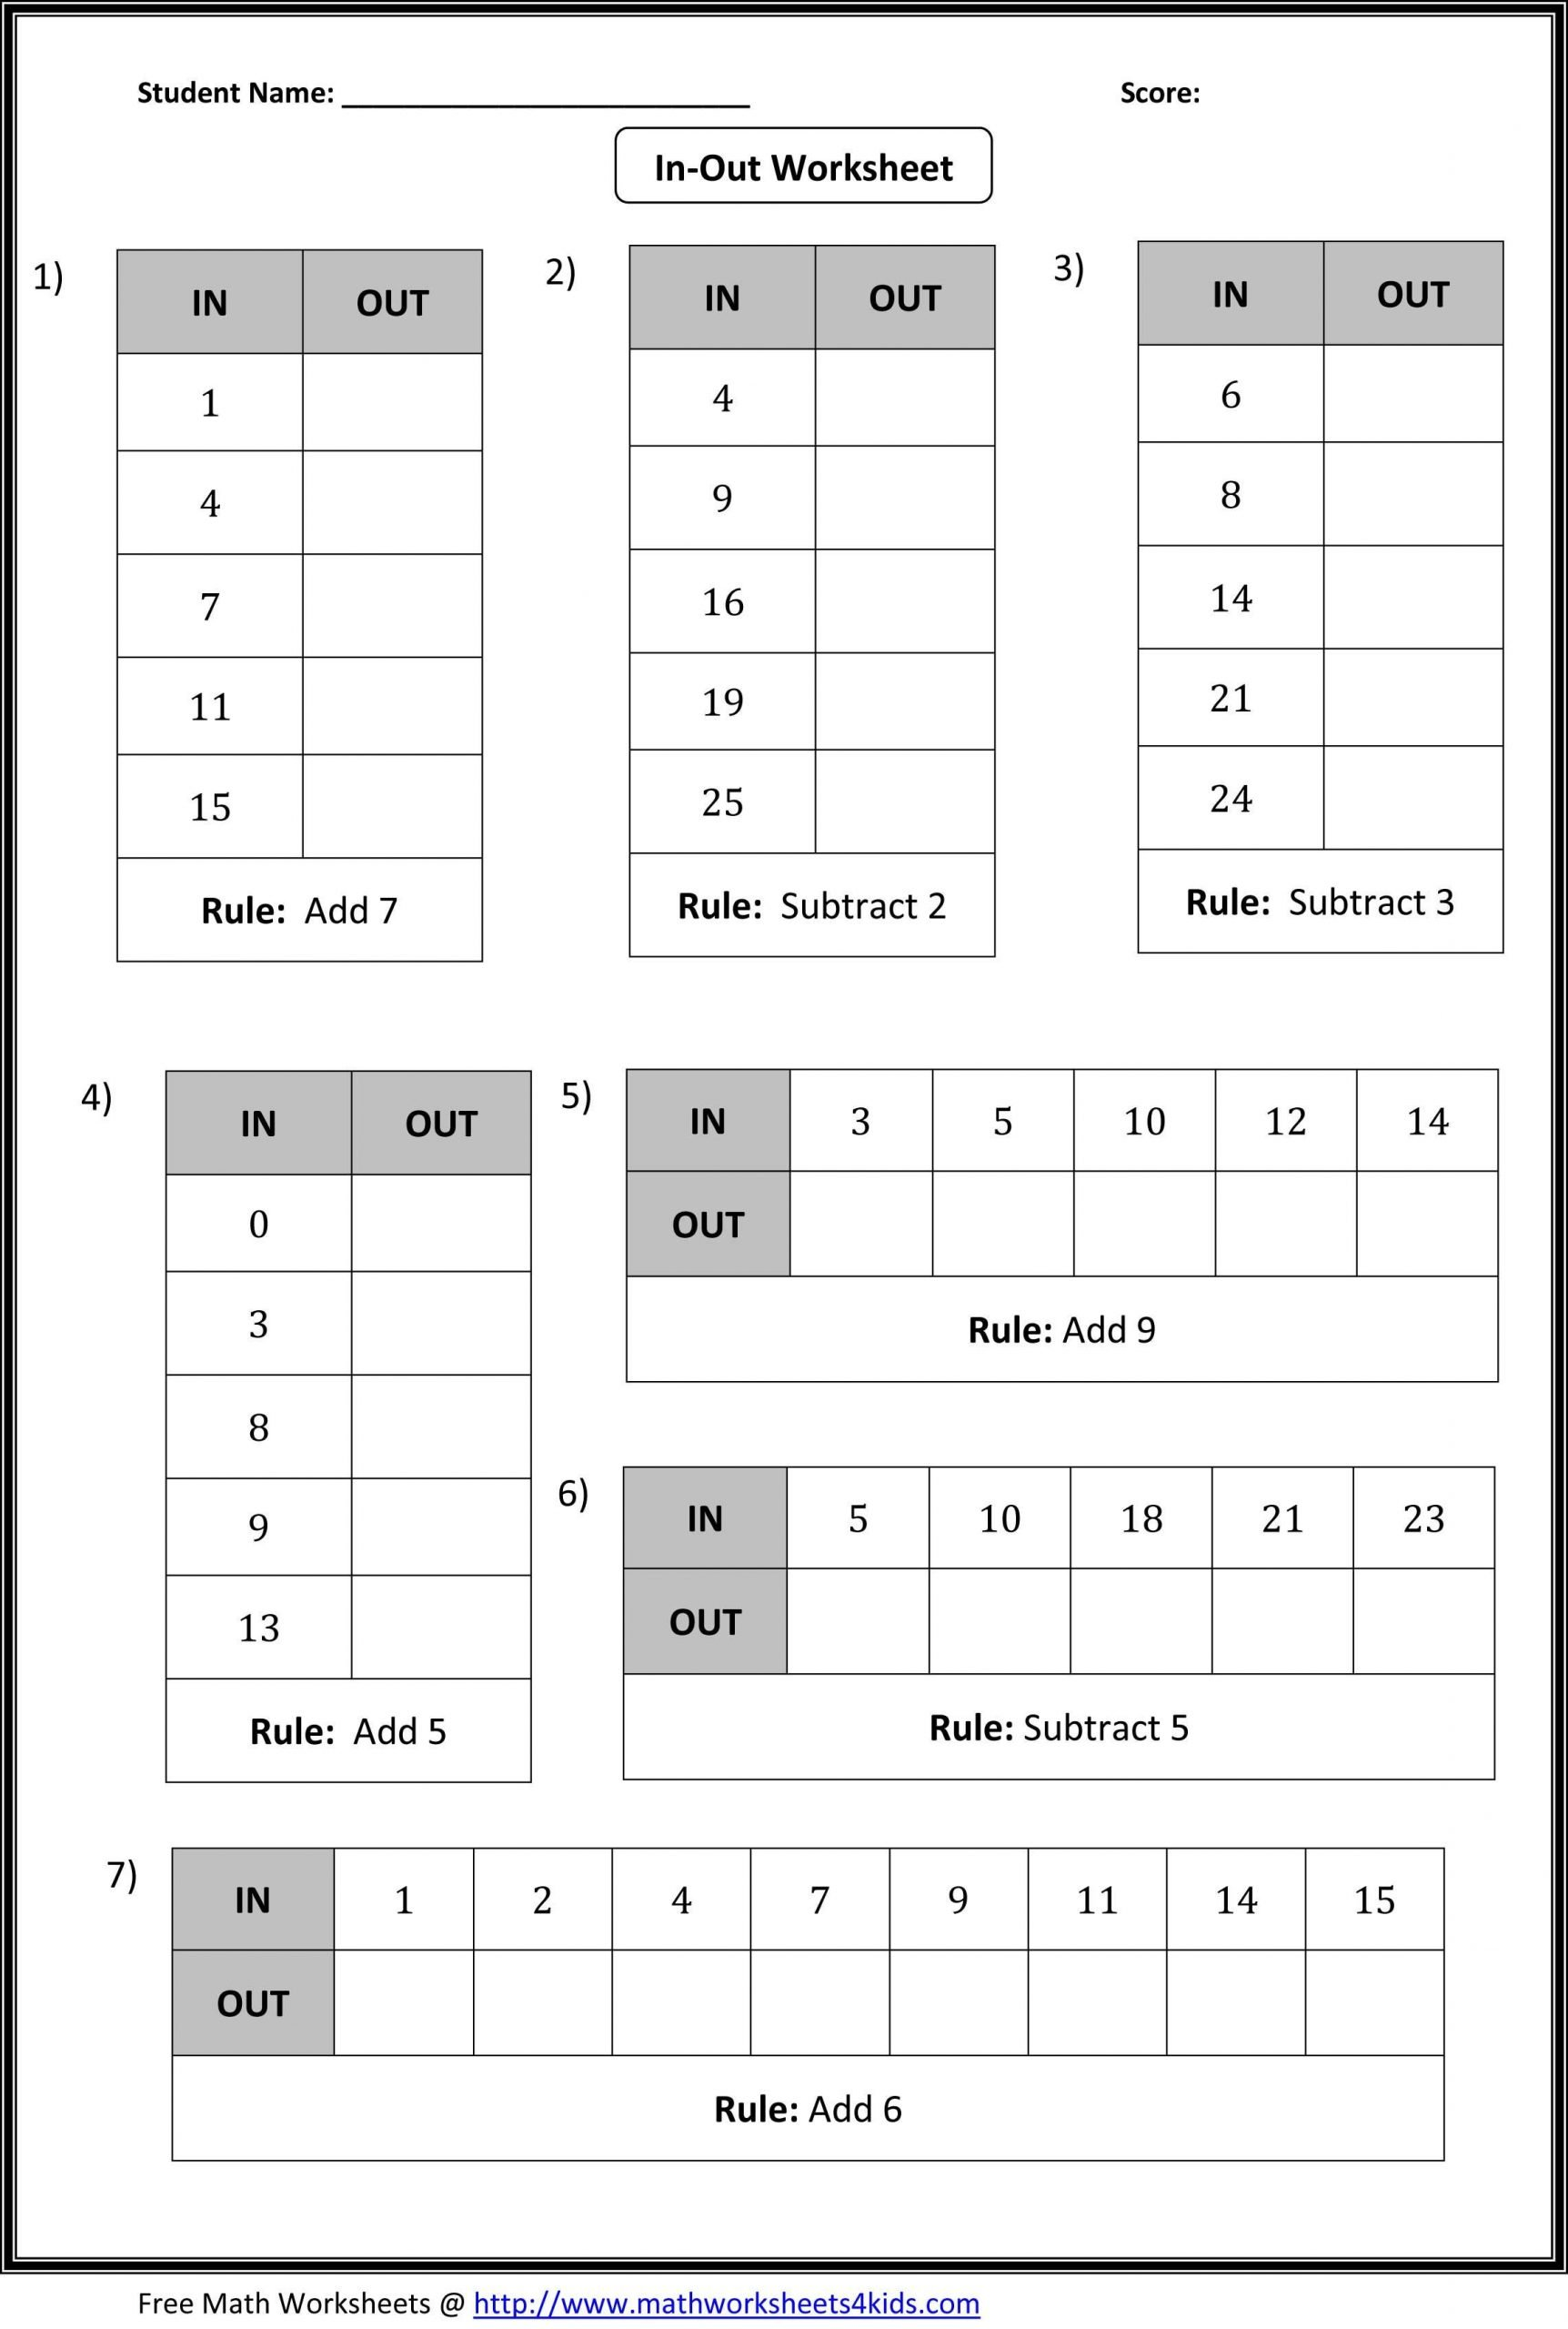 Function Table Worksheets Pdf In Out Boxes Worksheets Include Addition Subtraction